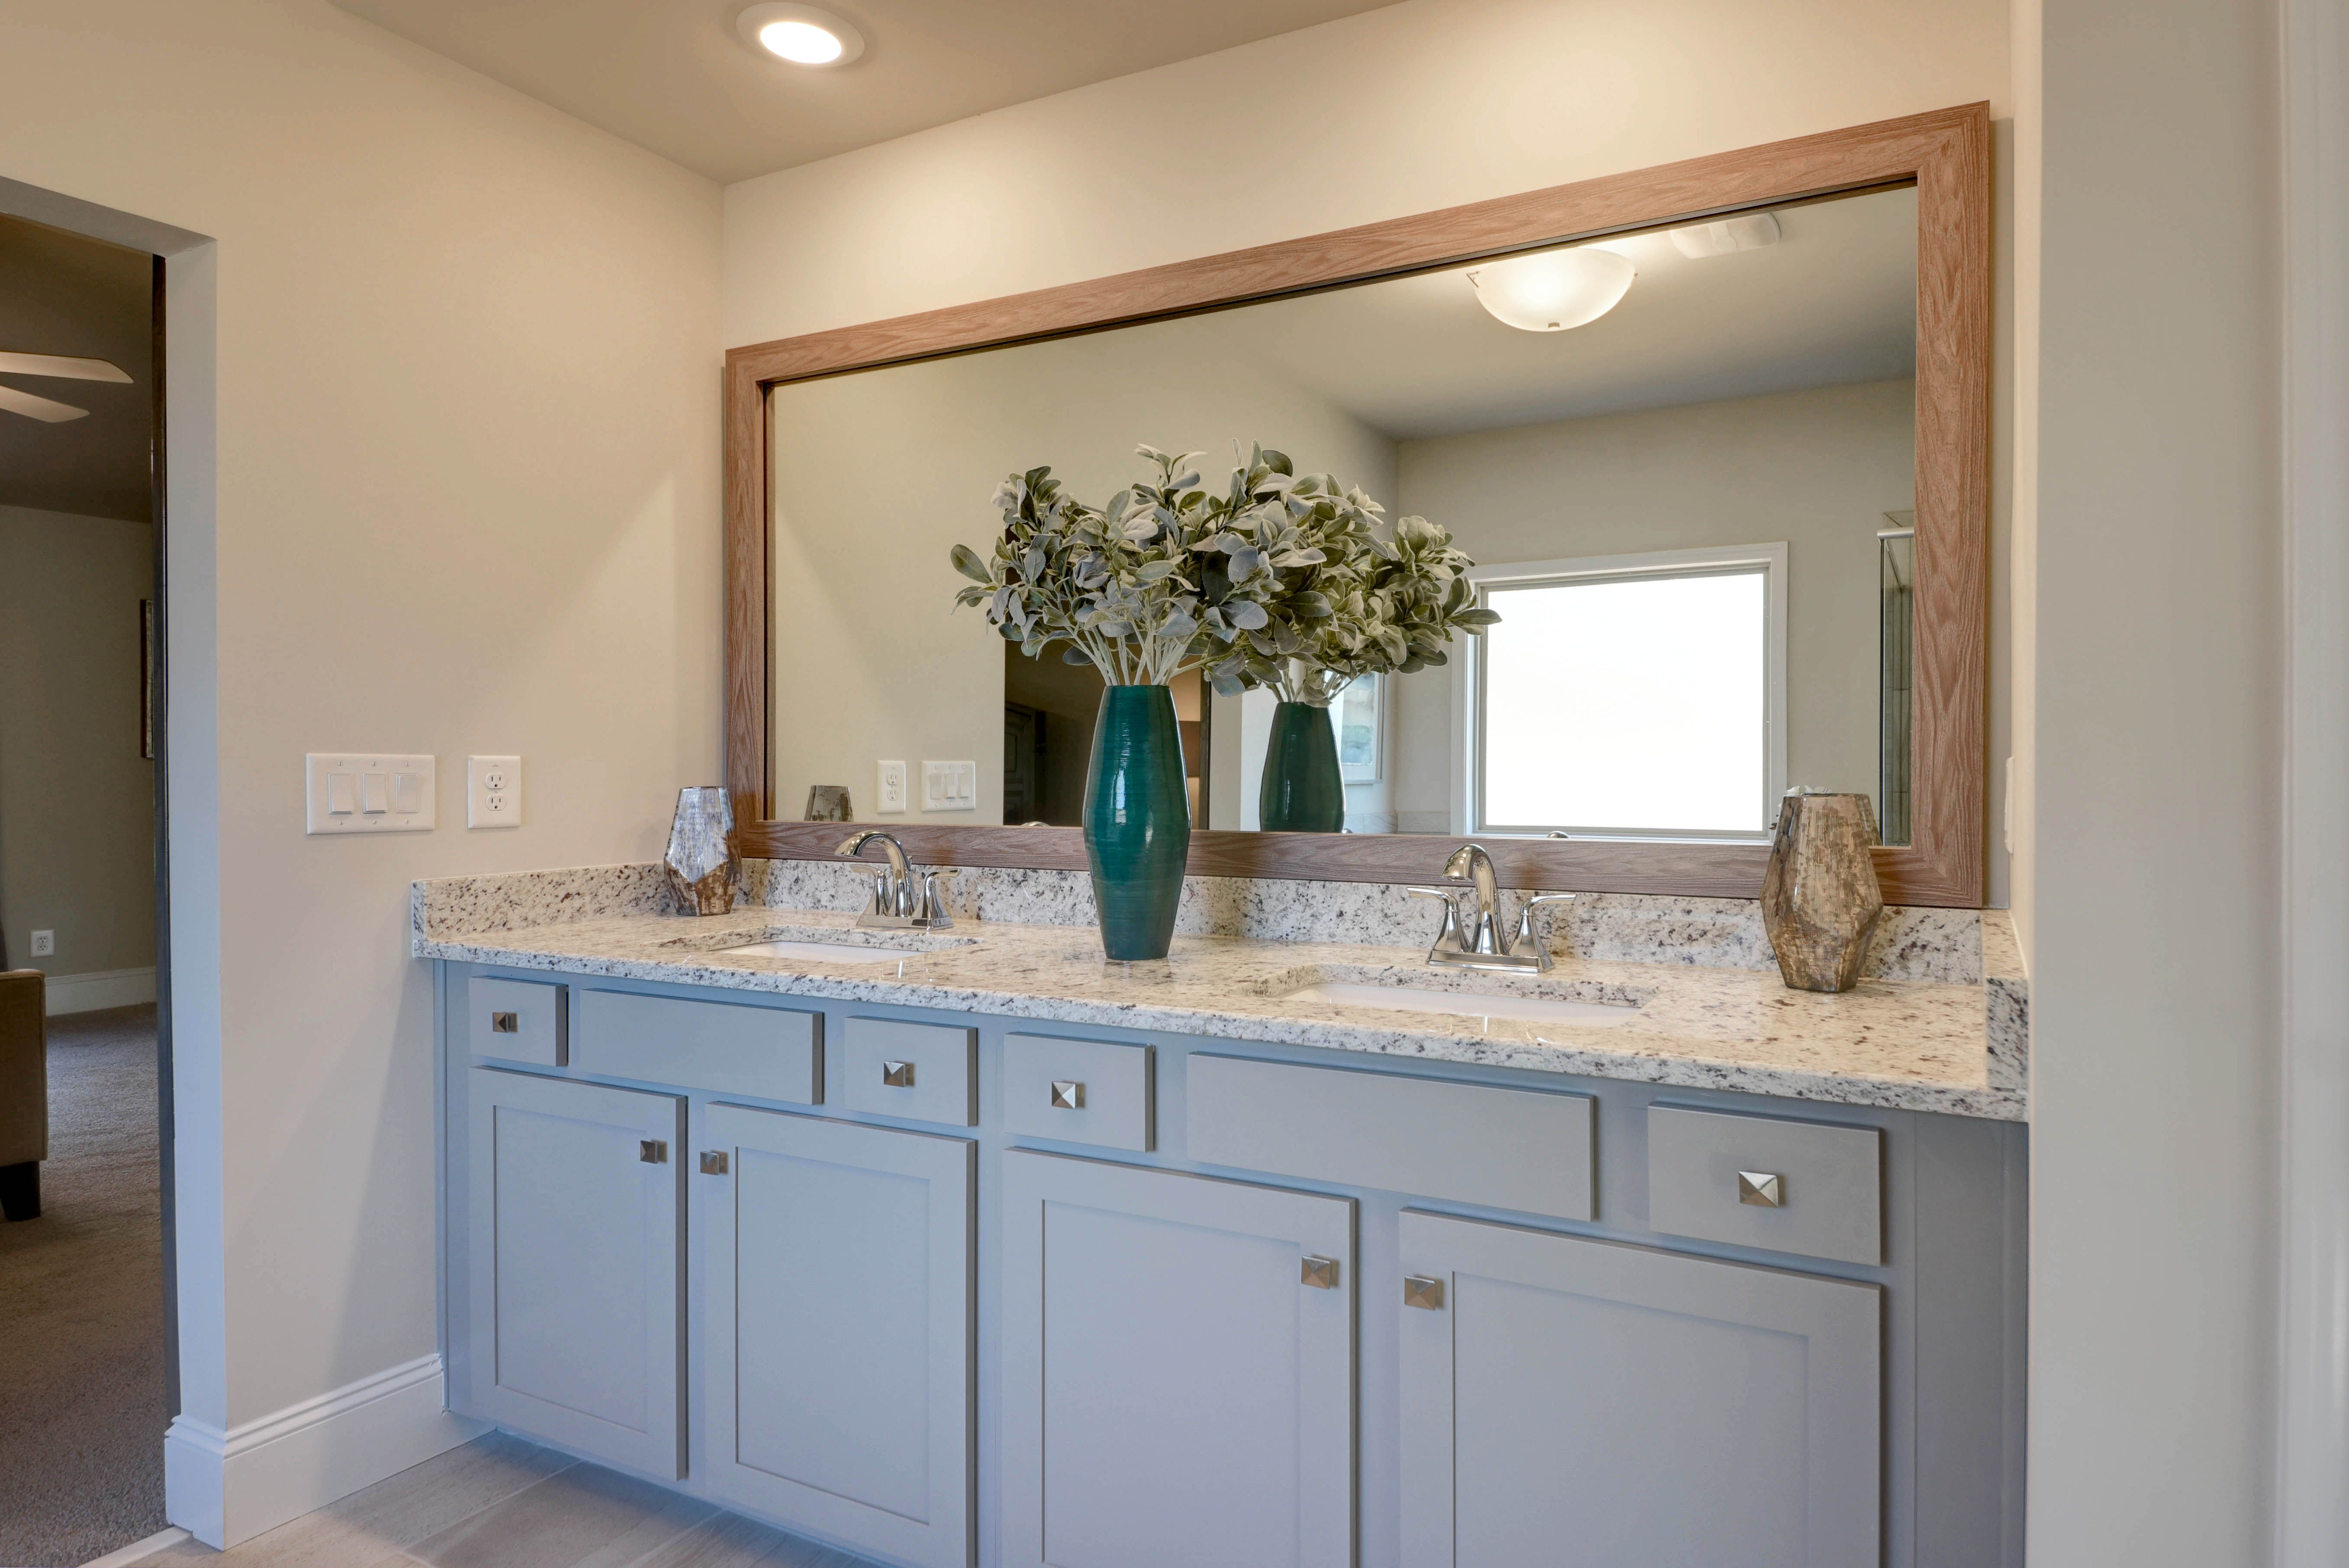 Bathroom featured in The Claire By Almont Homes in Atlanta, GA